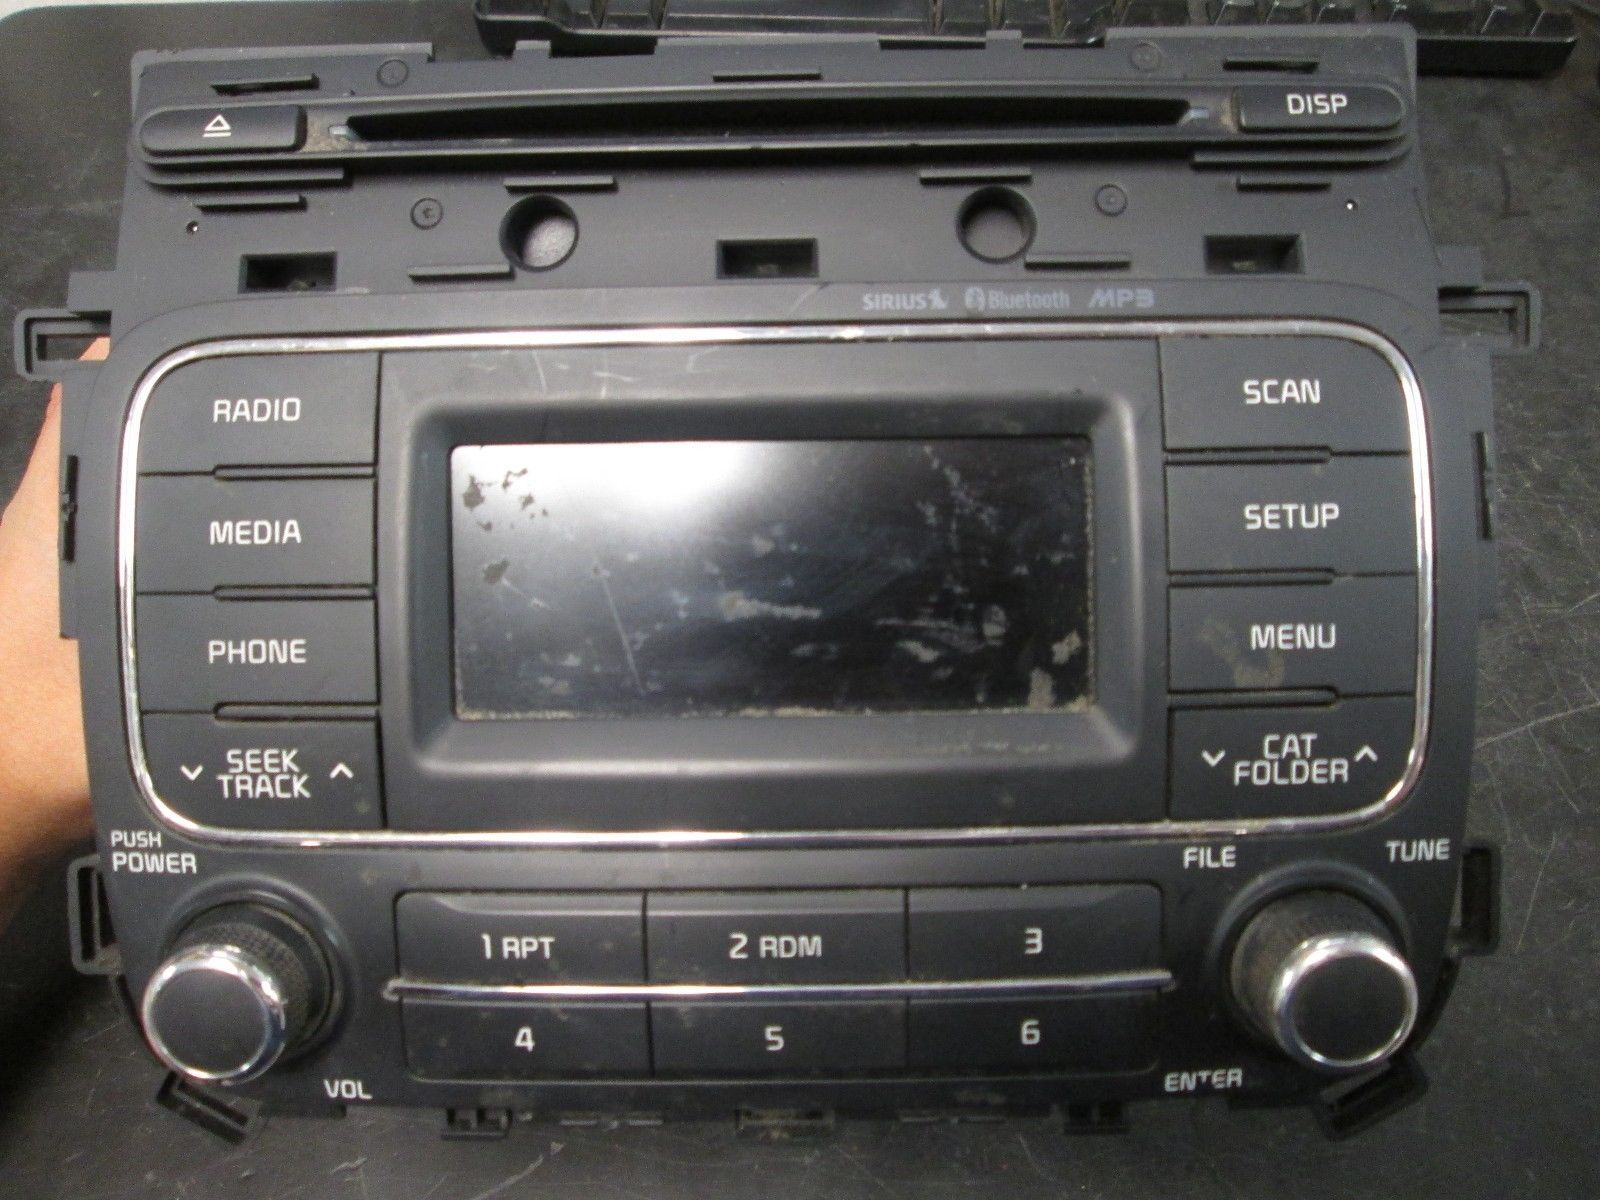 Primary image for 14 15 KIA FORTE RADIO CD MP3 PLAYER BLUETOOTH #96170-A7171WK *See item*